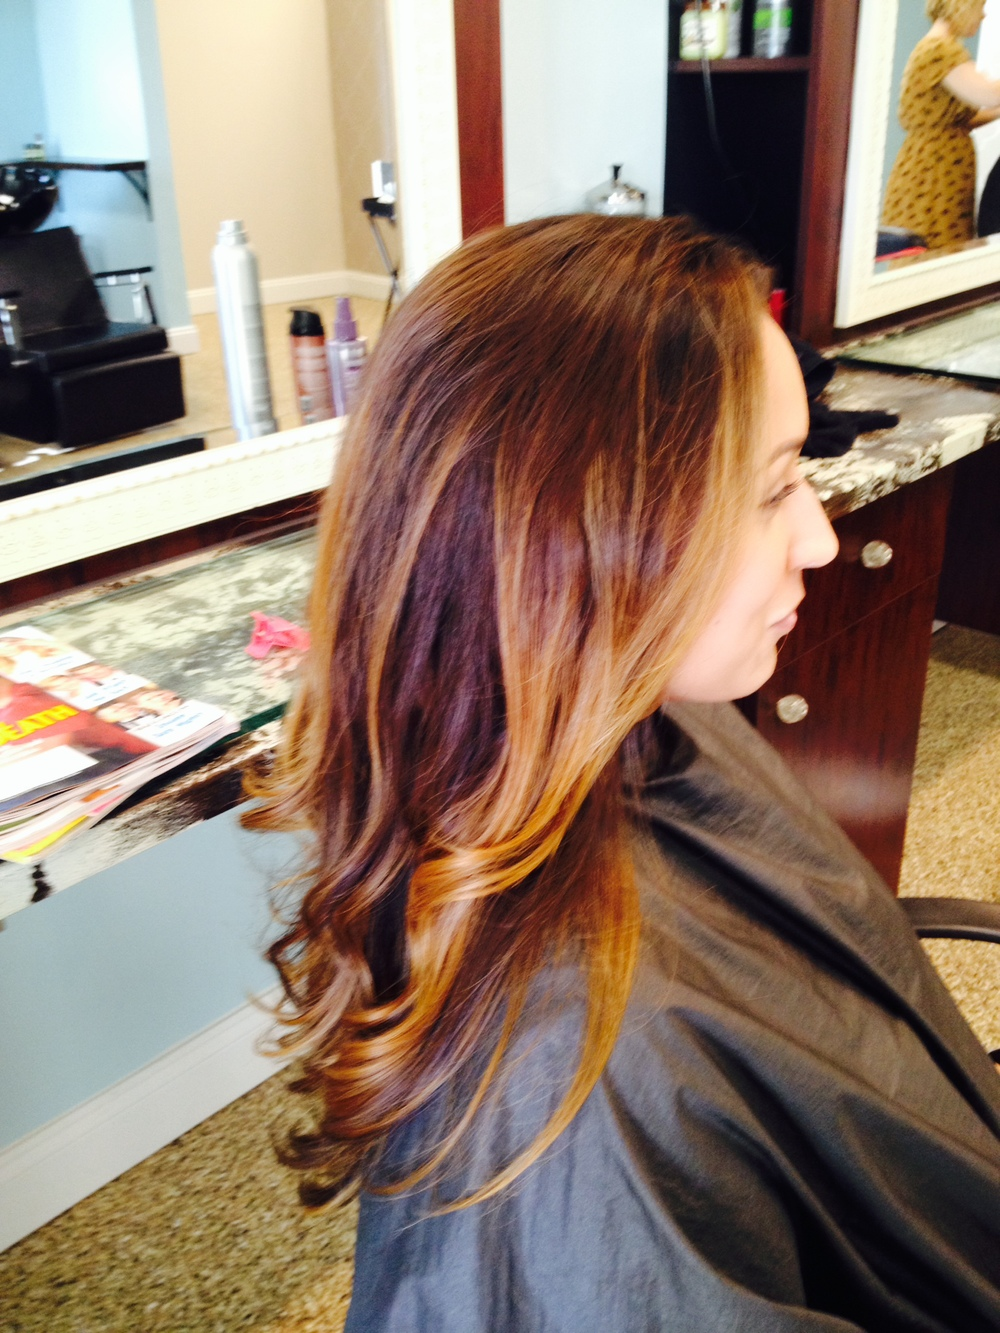 Another amazing ombre